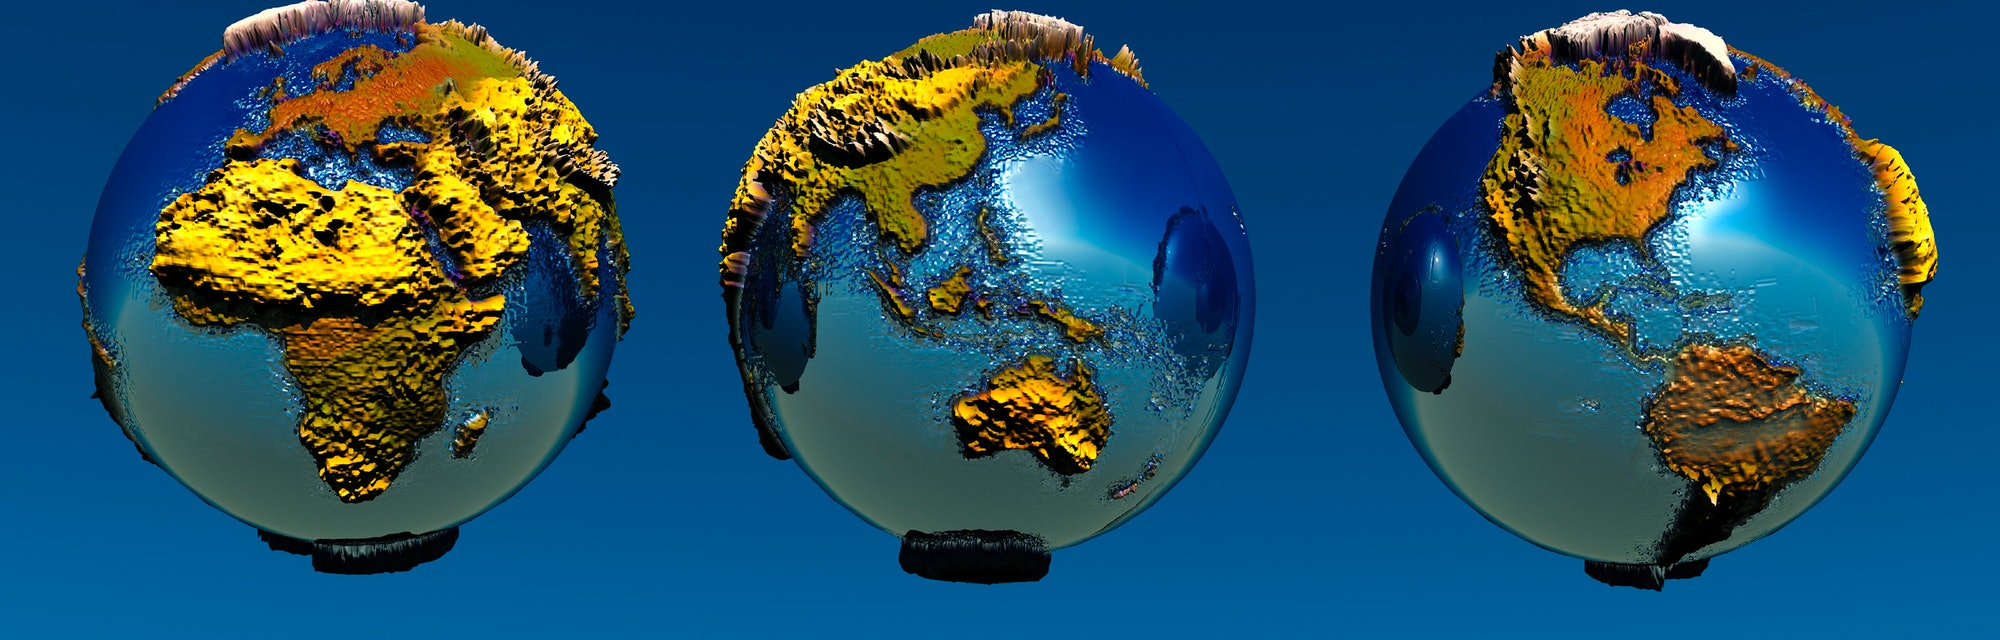 3 Views Of The Earth Showing Different Continents